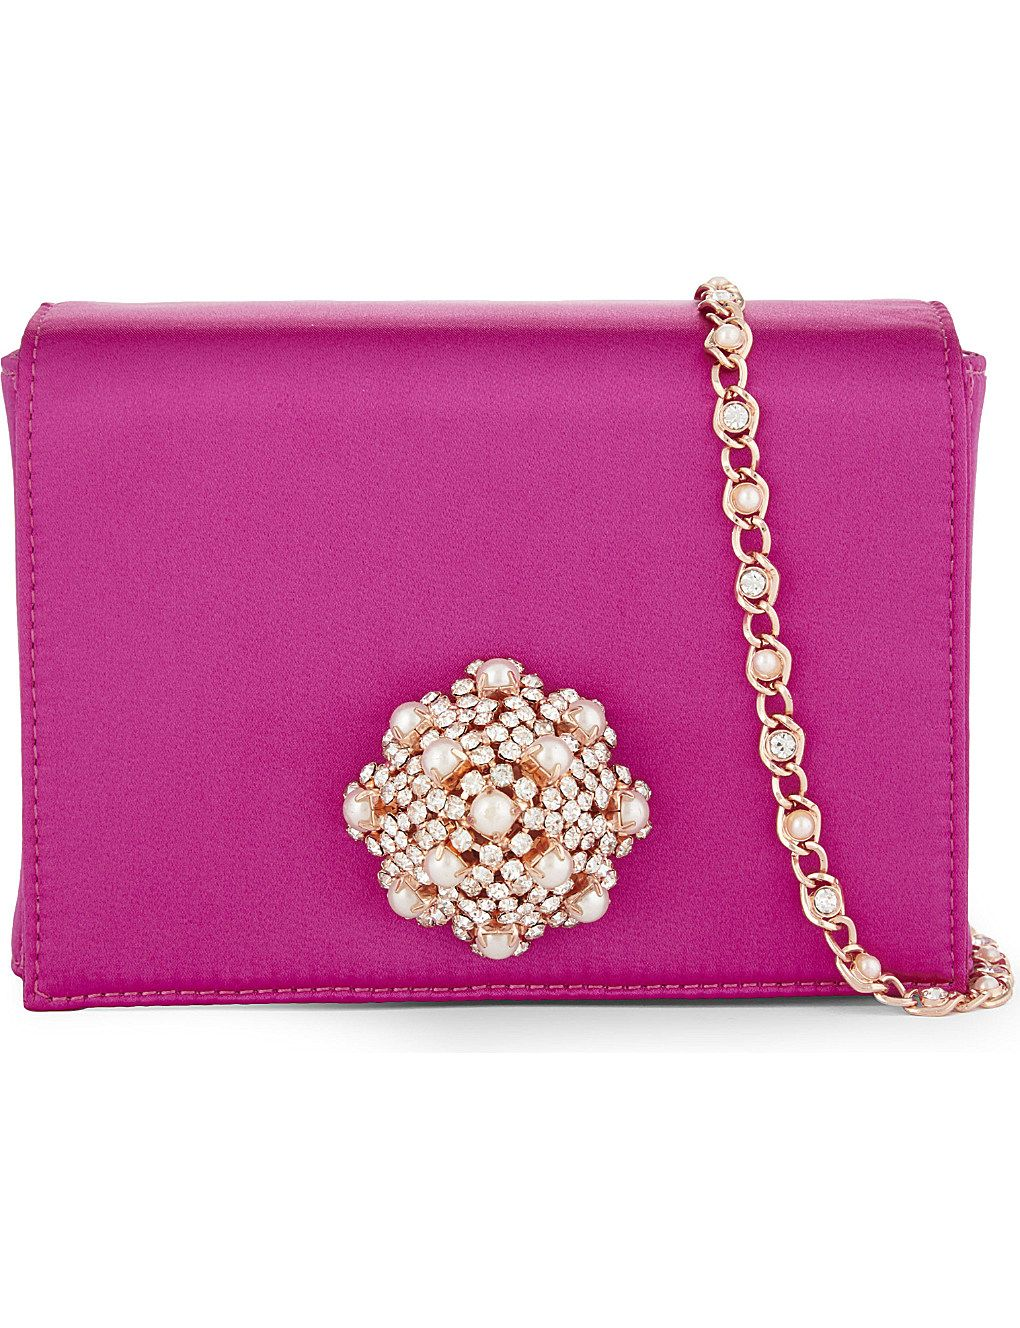 ac2a544a279 Selinaa brooch satin evening bag Ted Baker Handbag, Pearl Brooch, Dressy  Outfits, Evening